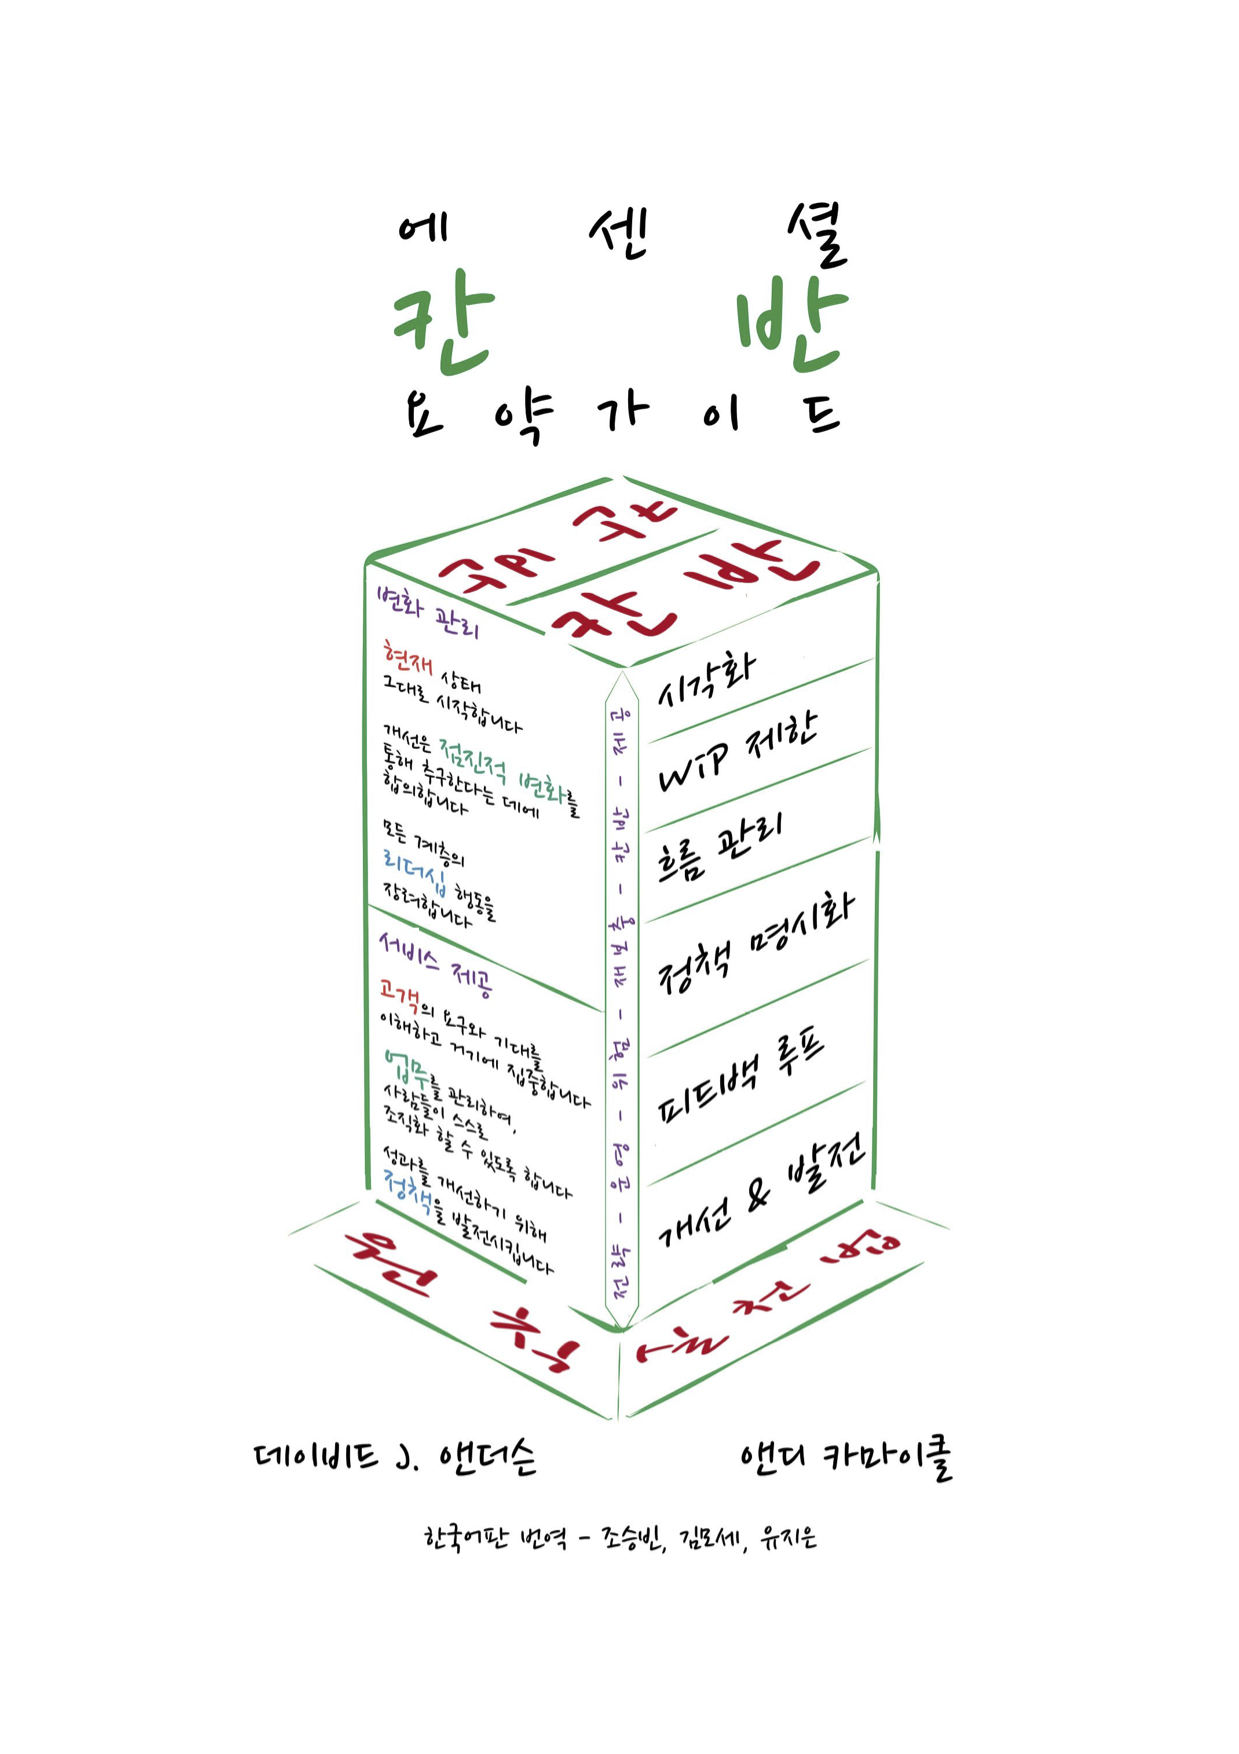 에센셜 칸반 요약가이드 – Self, Other and Context